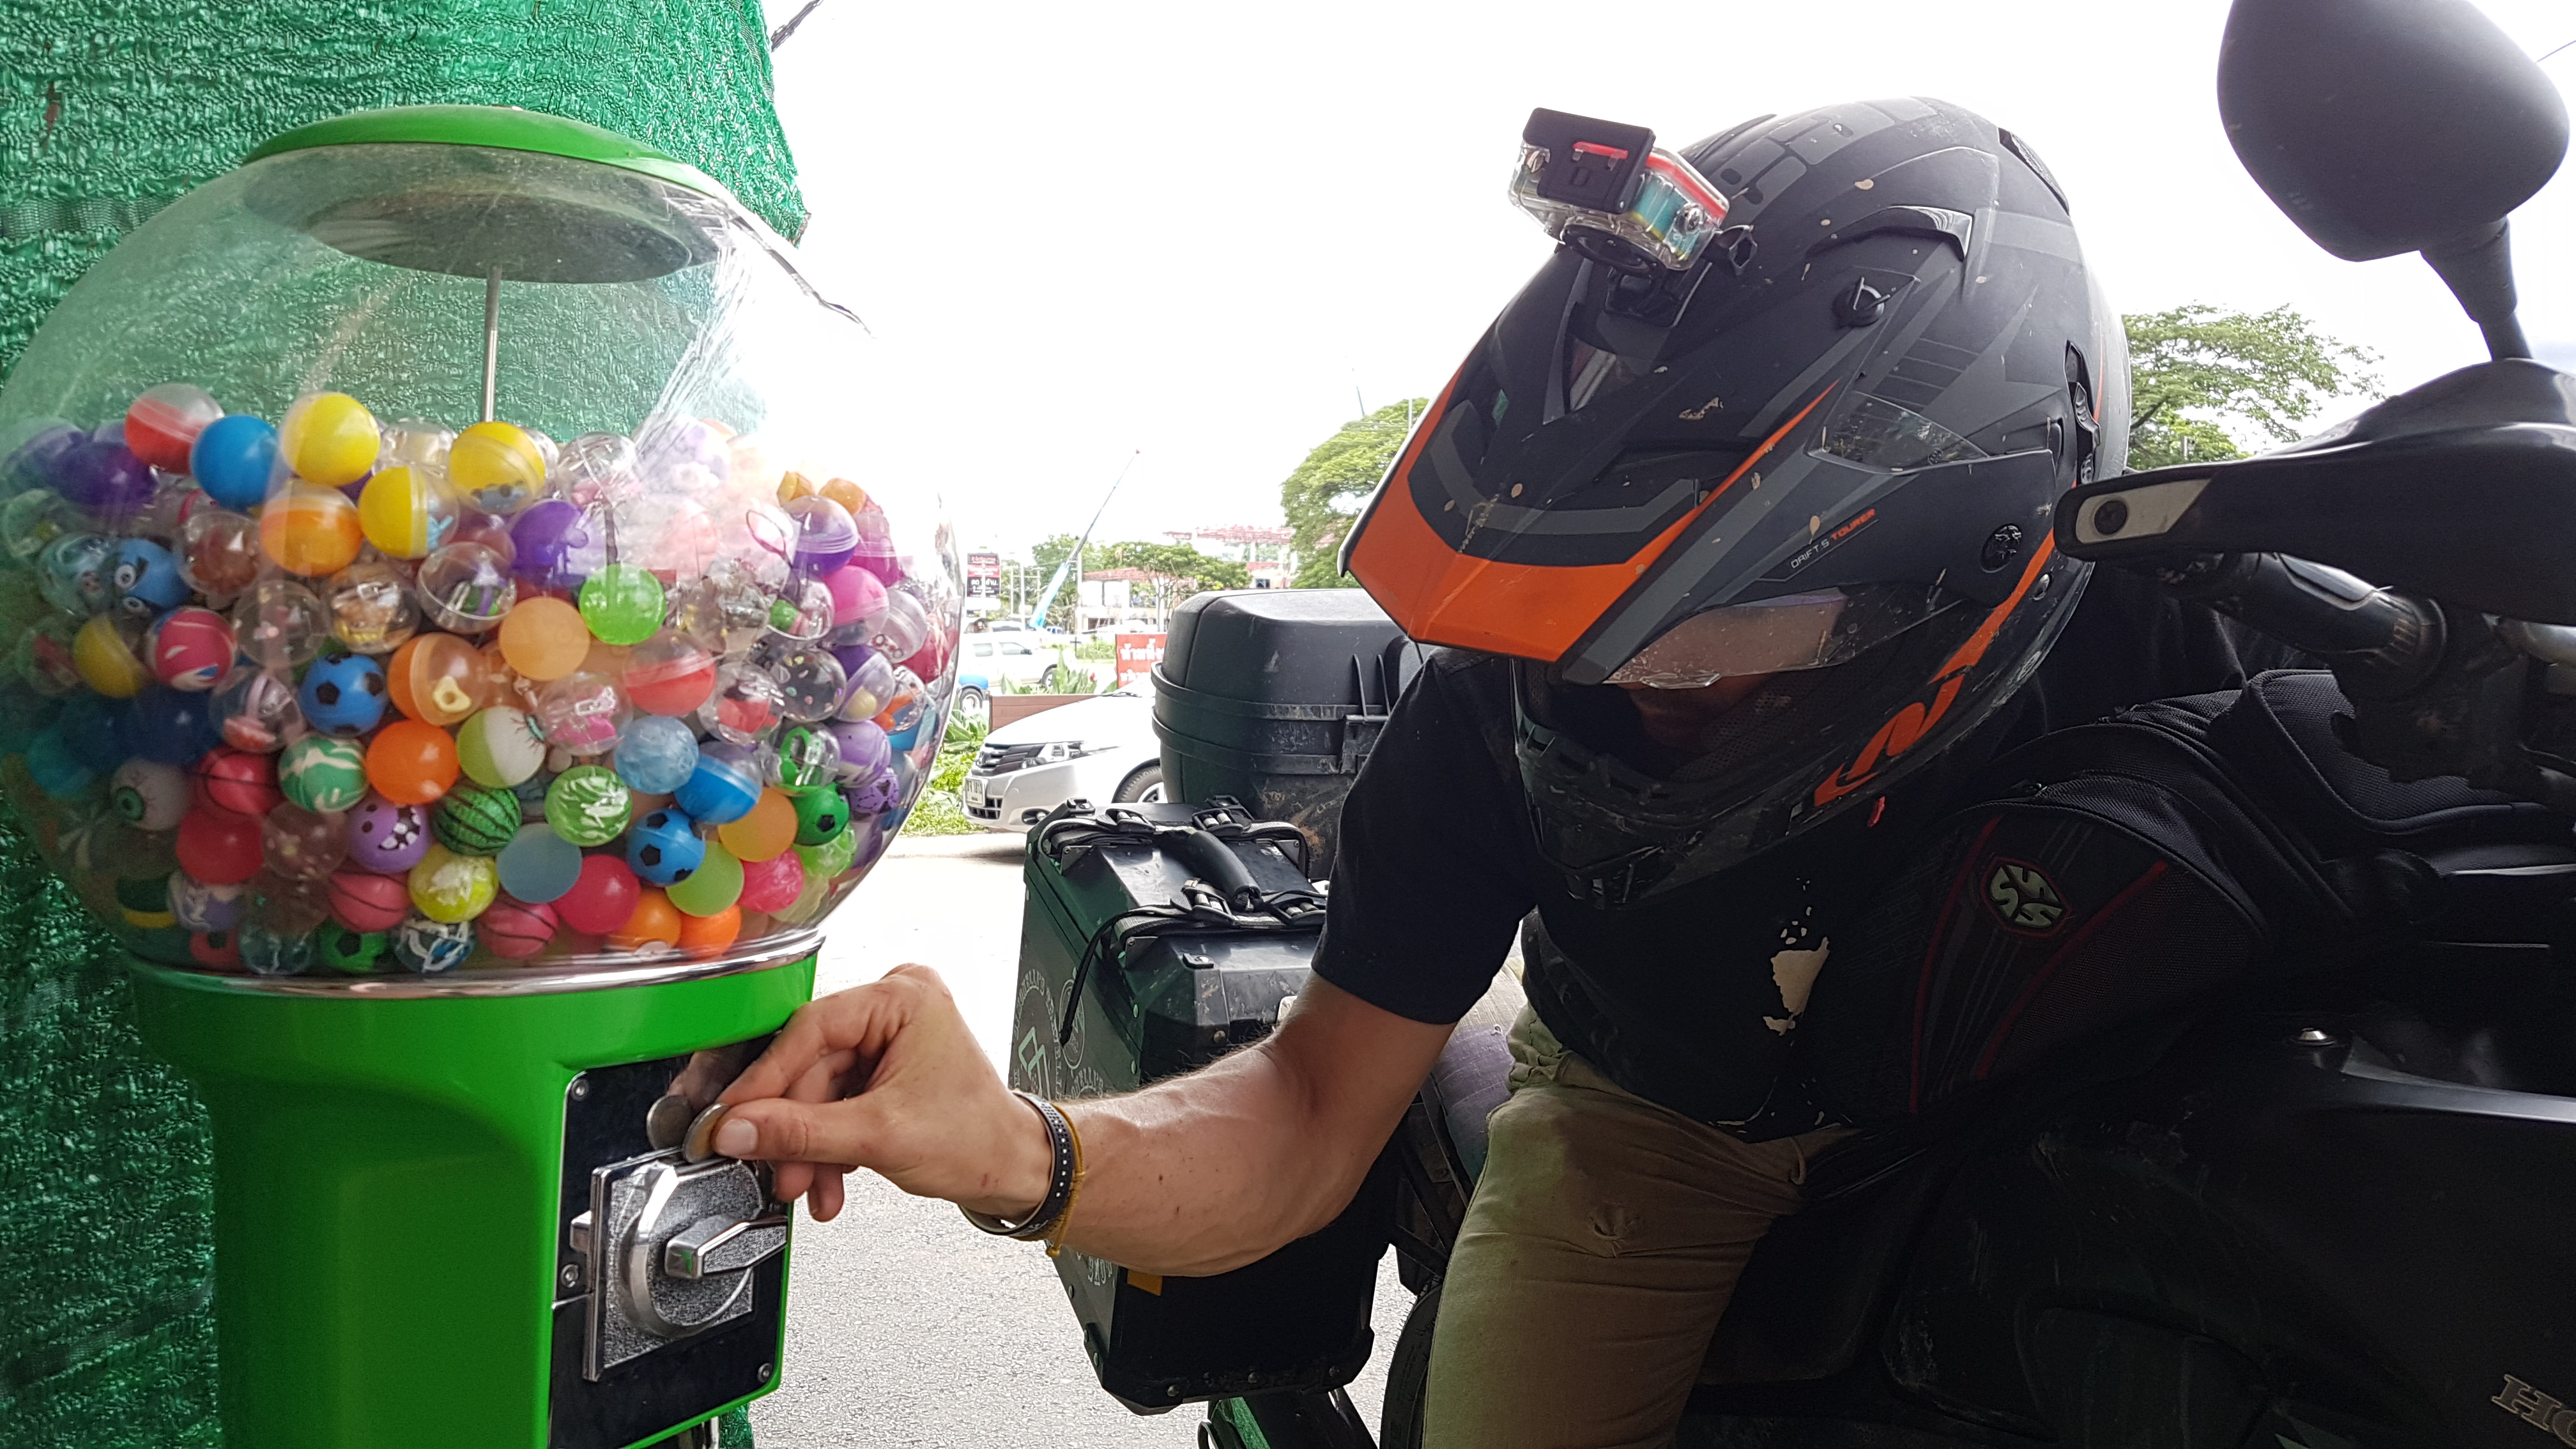 Bouncy balls and motorcycles